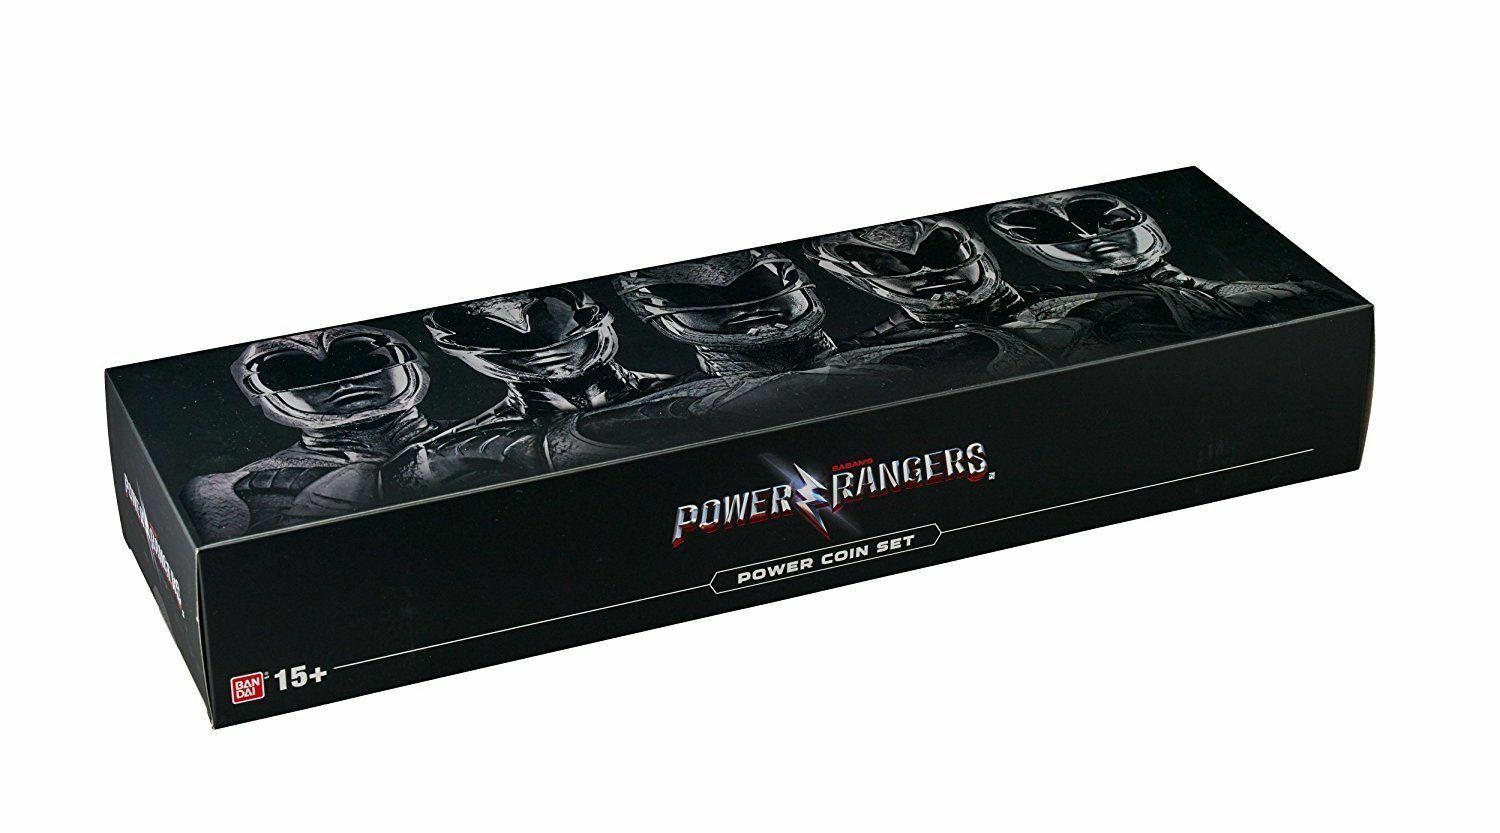 BANDAI POWER RANGERS MOVIE POWER COIN COIN COIN SET LIMITED EDITION LEGACY WITH DISPLAY d1b9e8